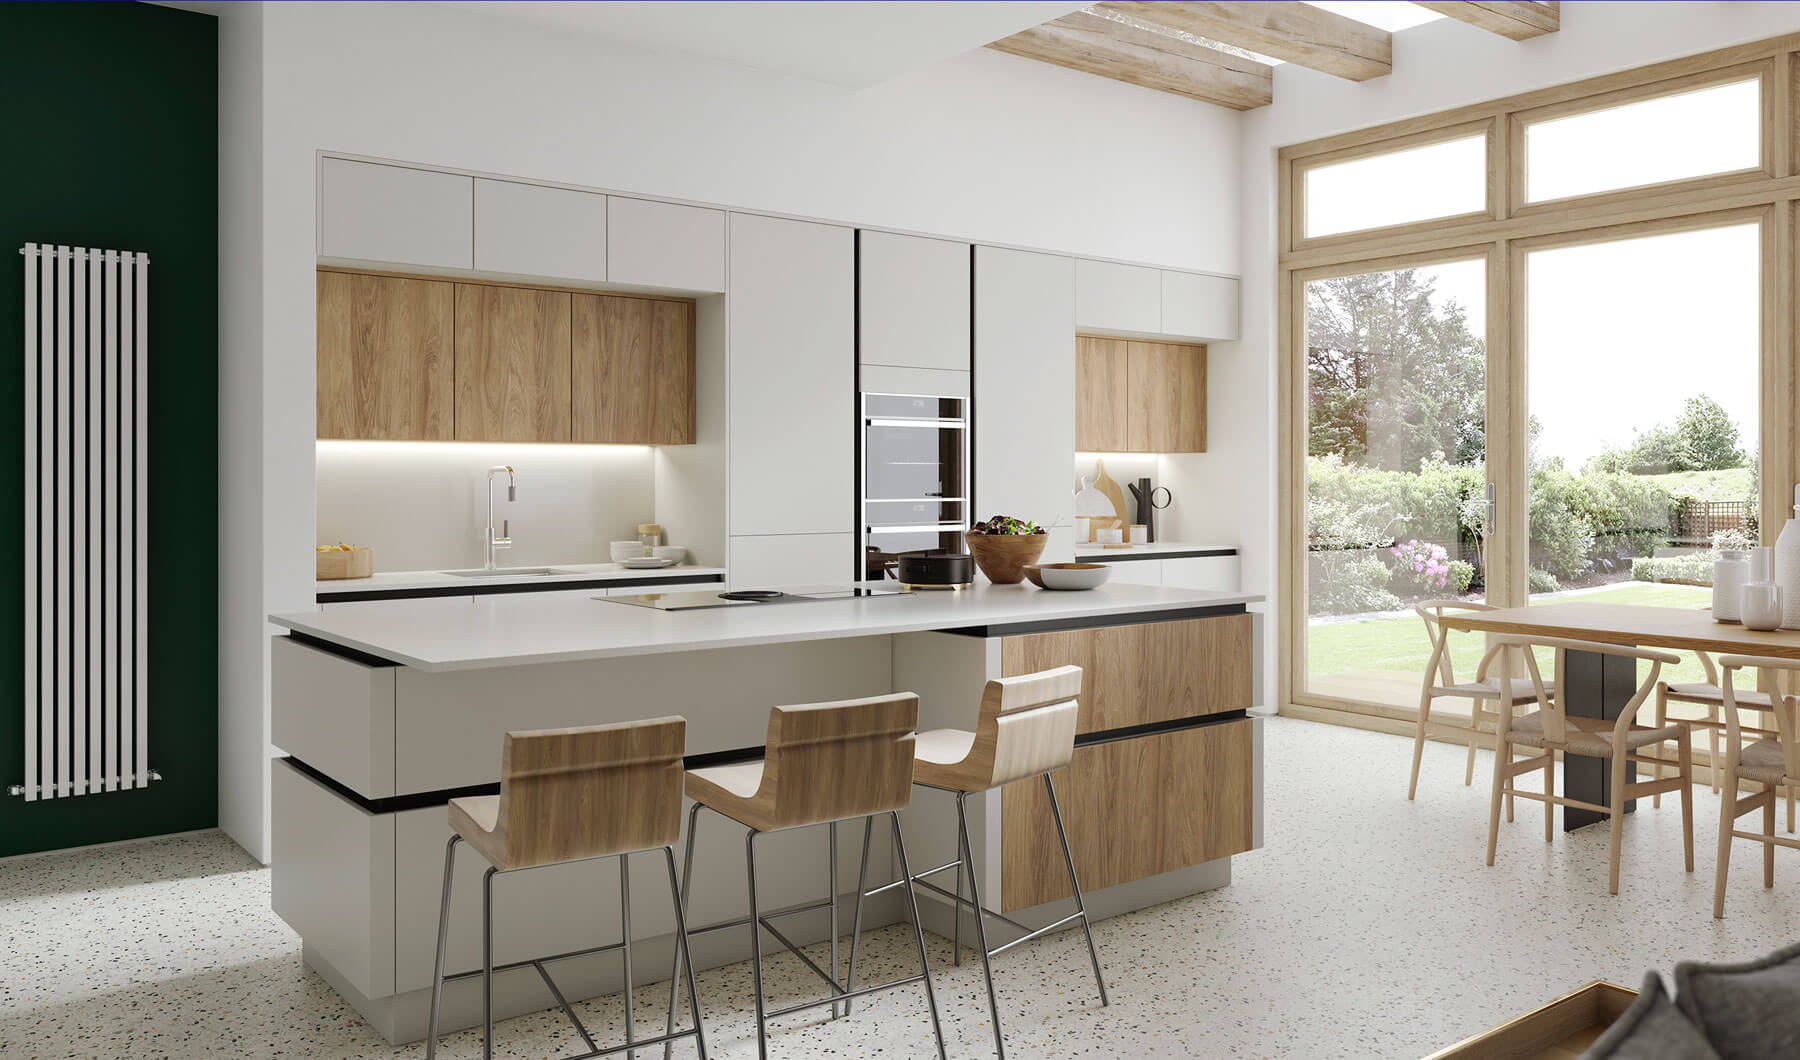 Kitchen Design Architecture Ideas ~ Black rok kitchen designers east sussex showroom